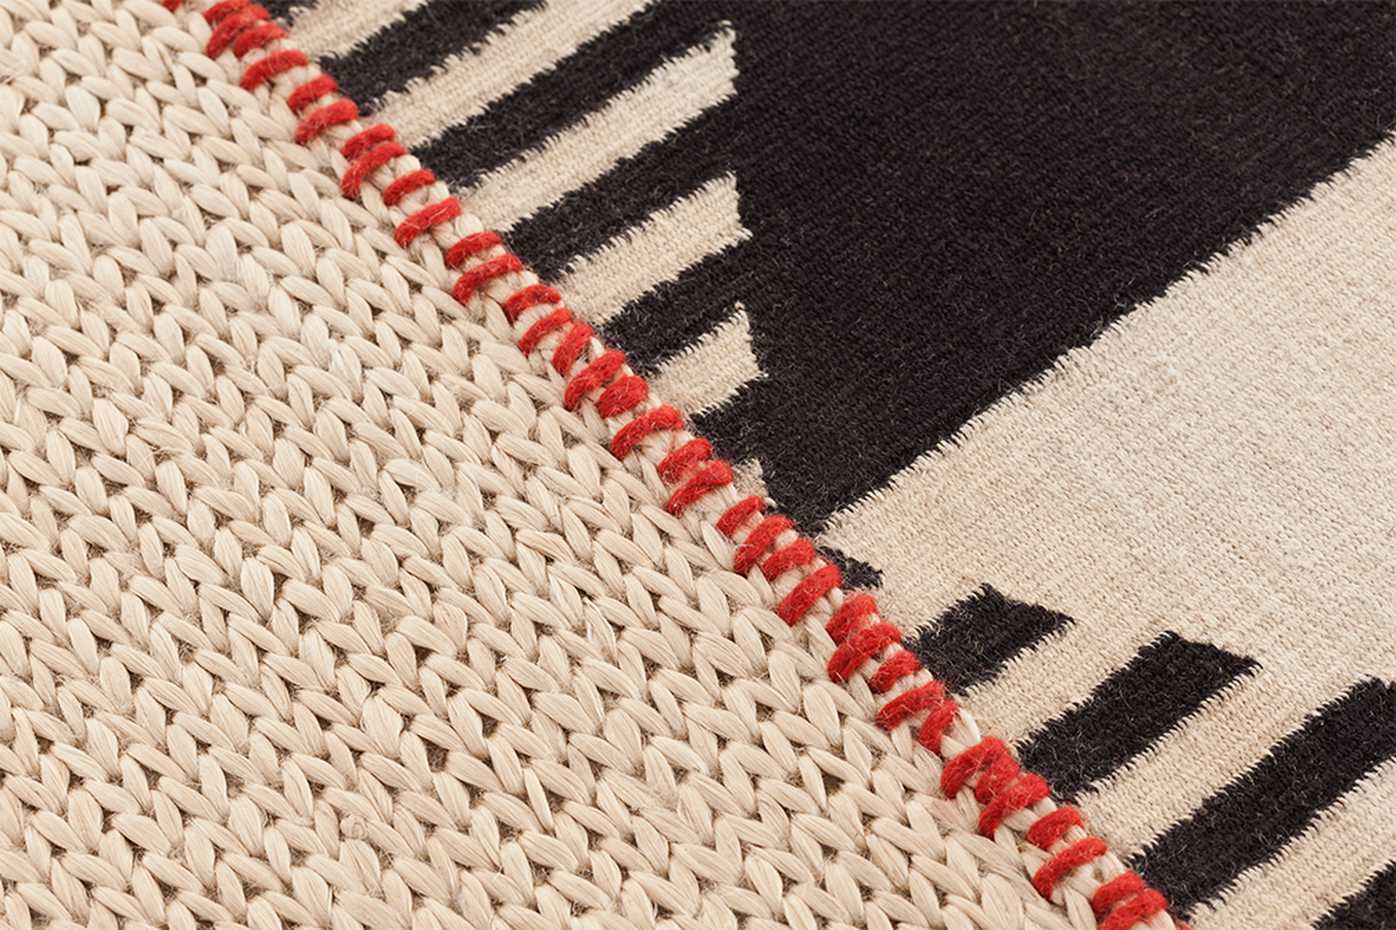 Rustic Chic Rugs by Gan Rugs product image 2